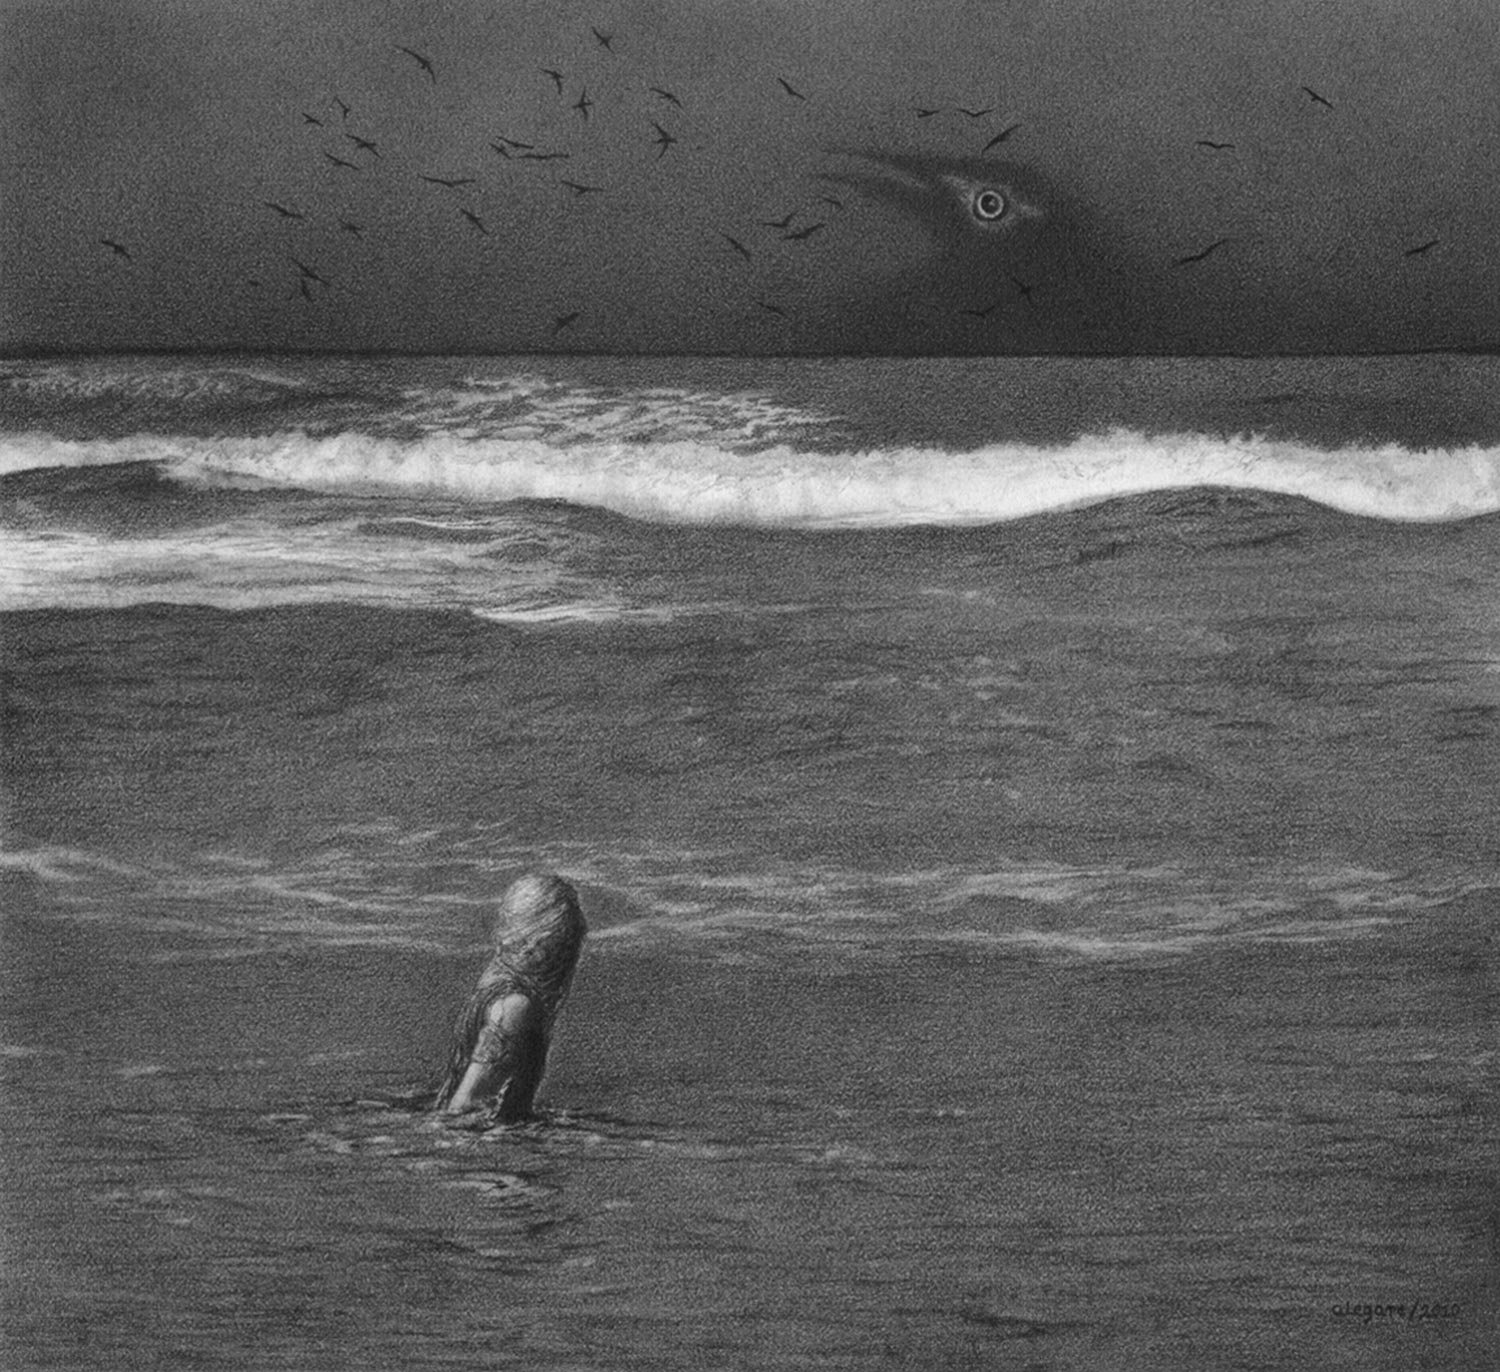 graphite drawing of the sea by alejandro garcia restrepo